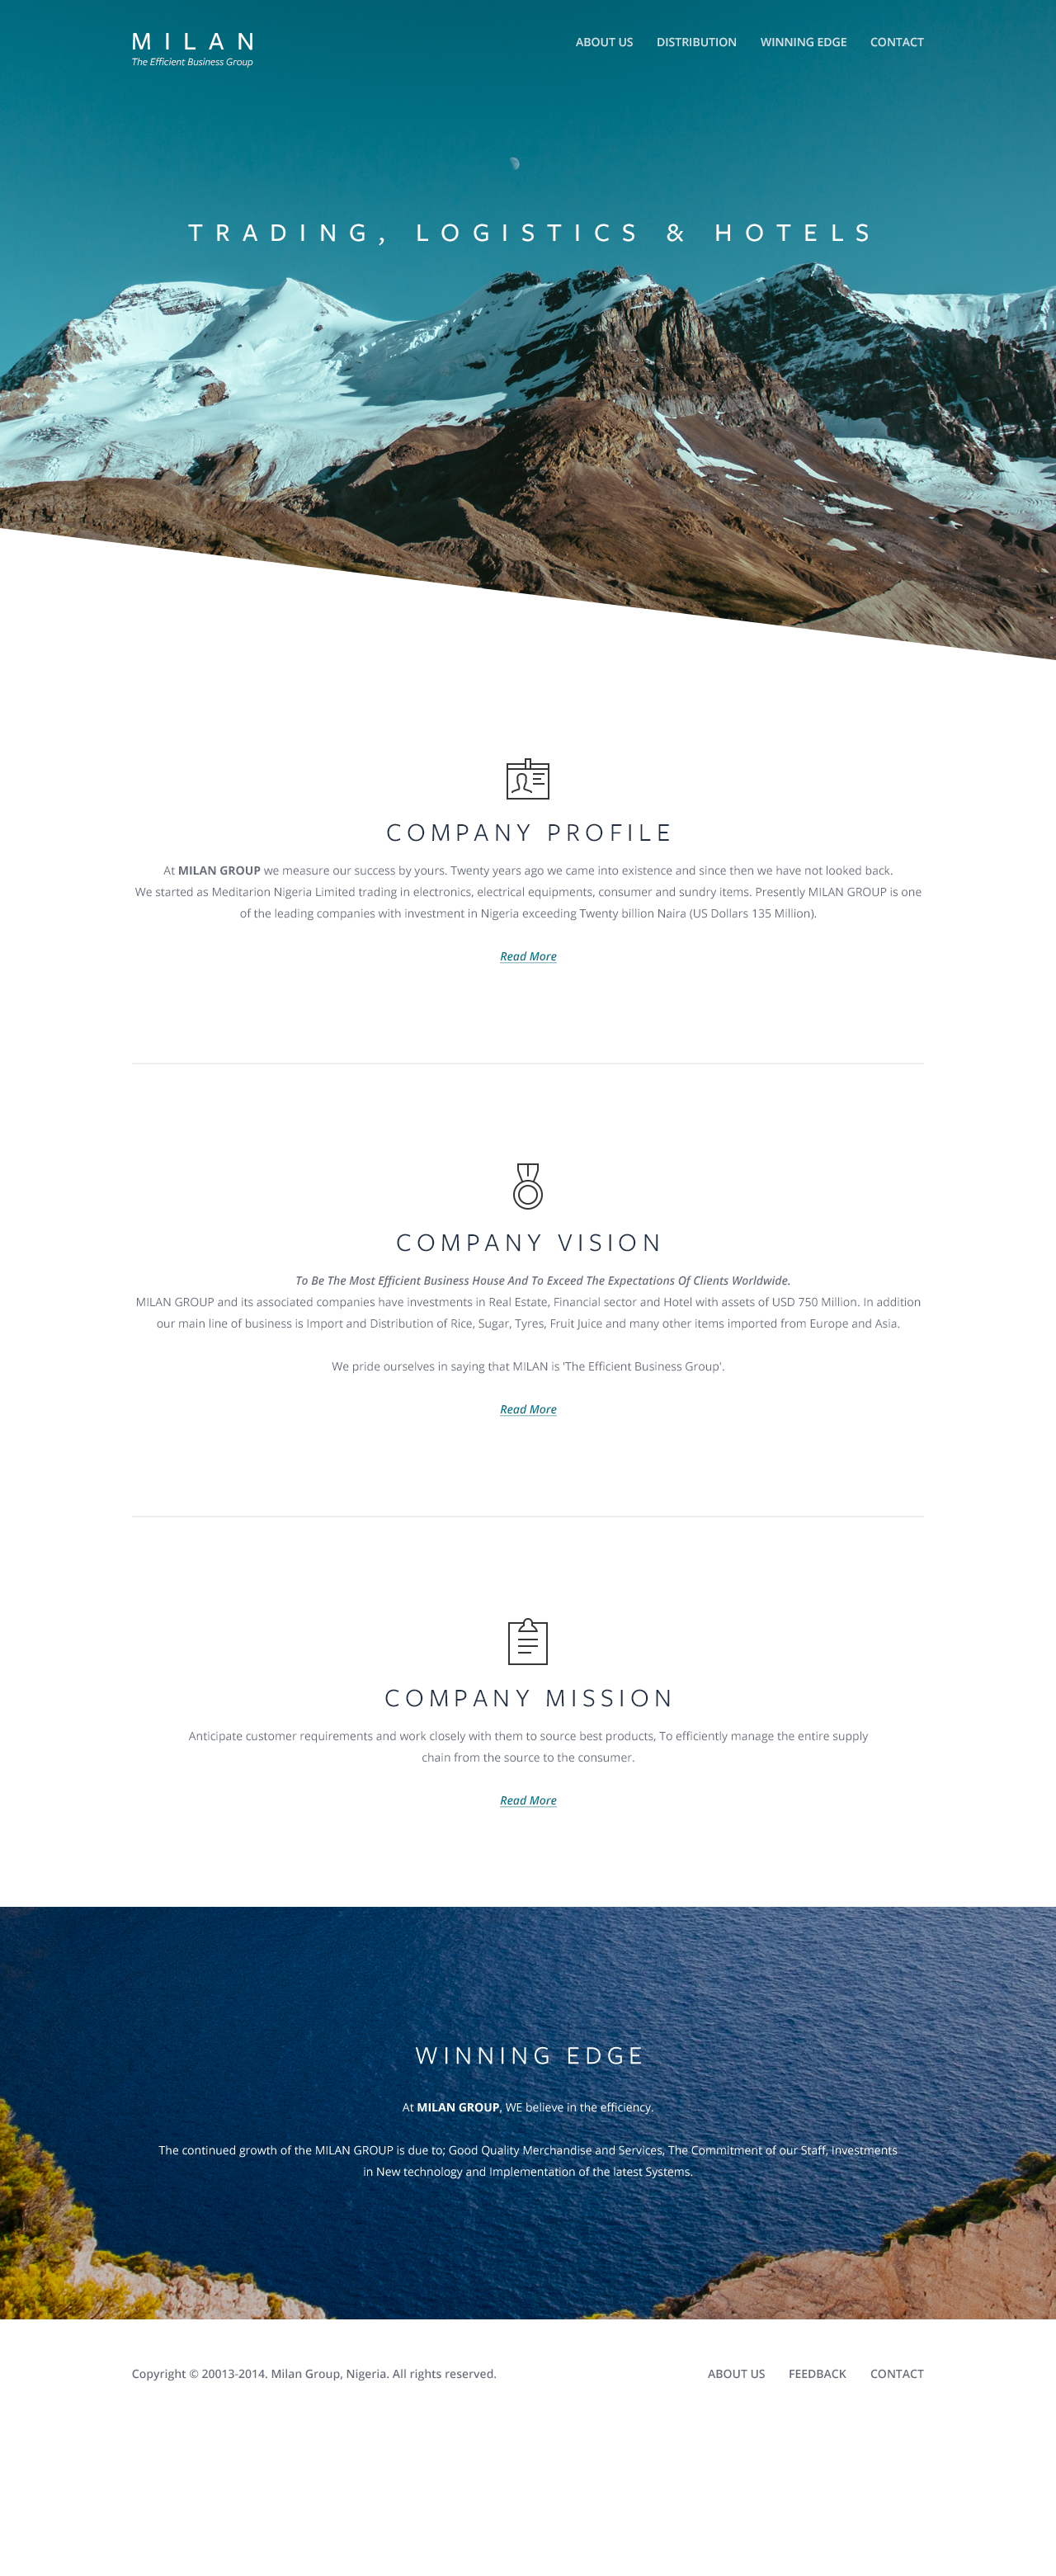 Milan business group website landing page design web design